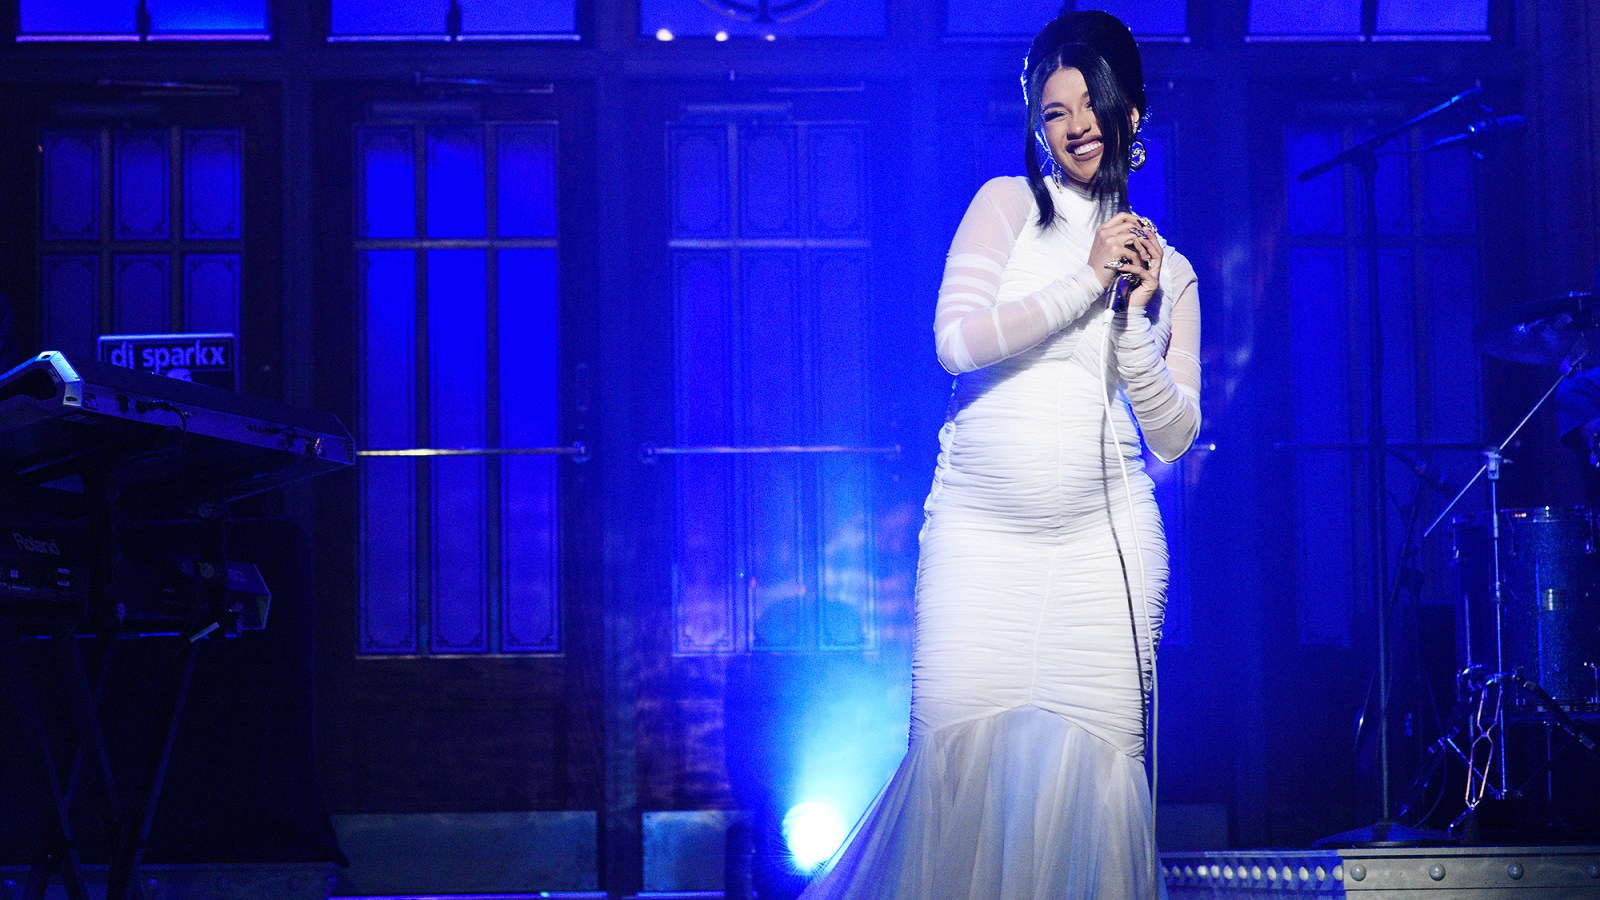 cardi-b-saturday-night-live-pregnant-nbc